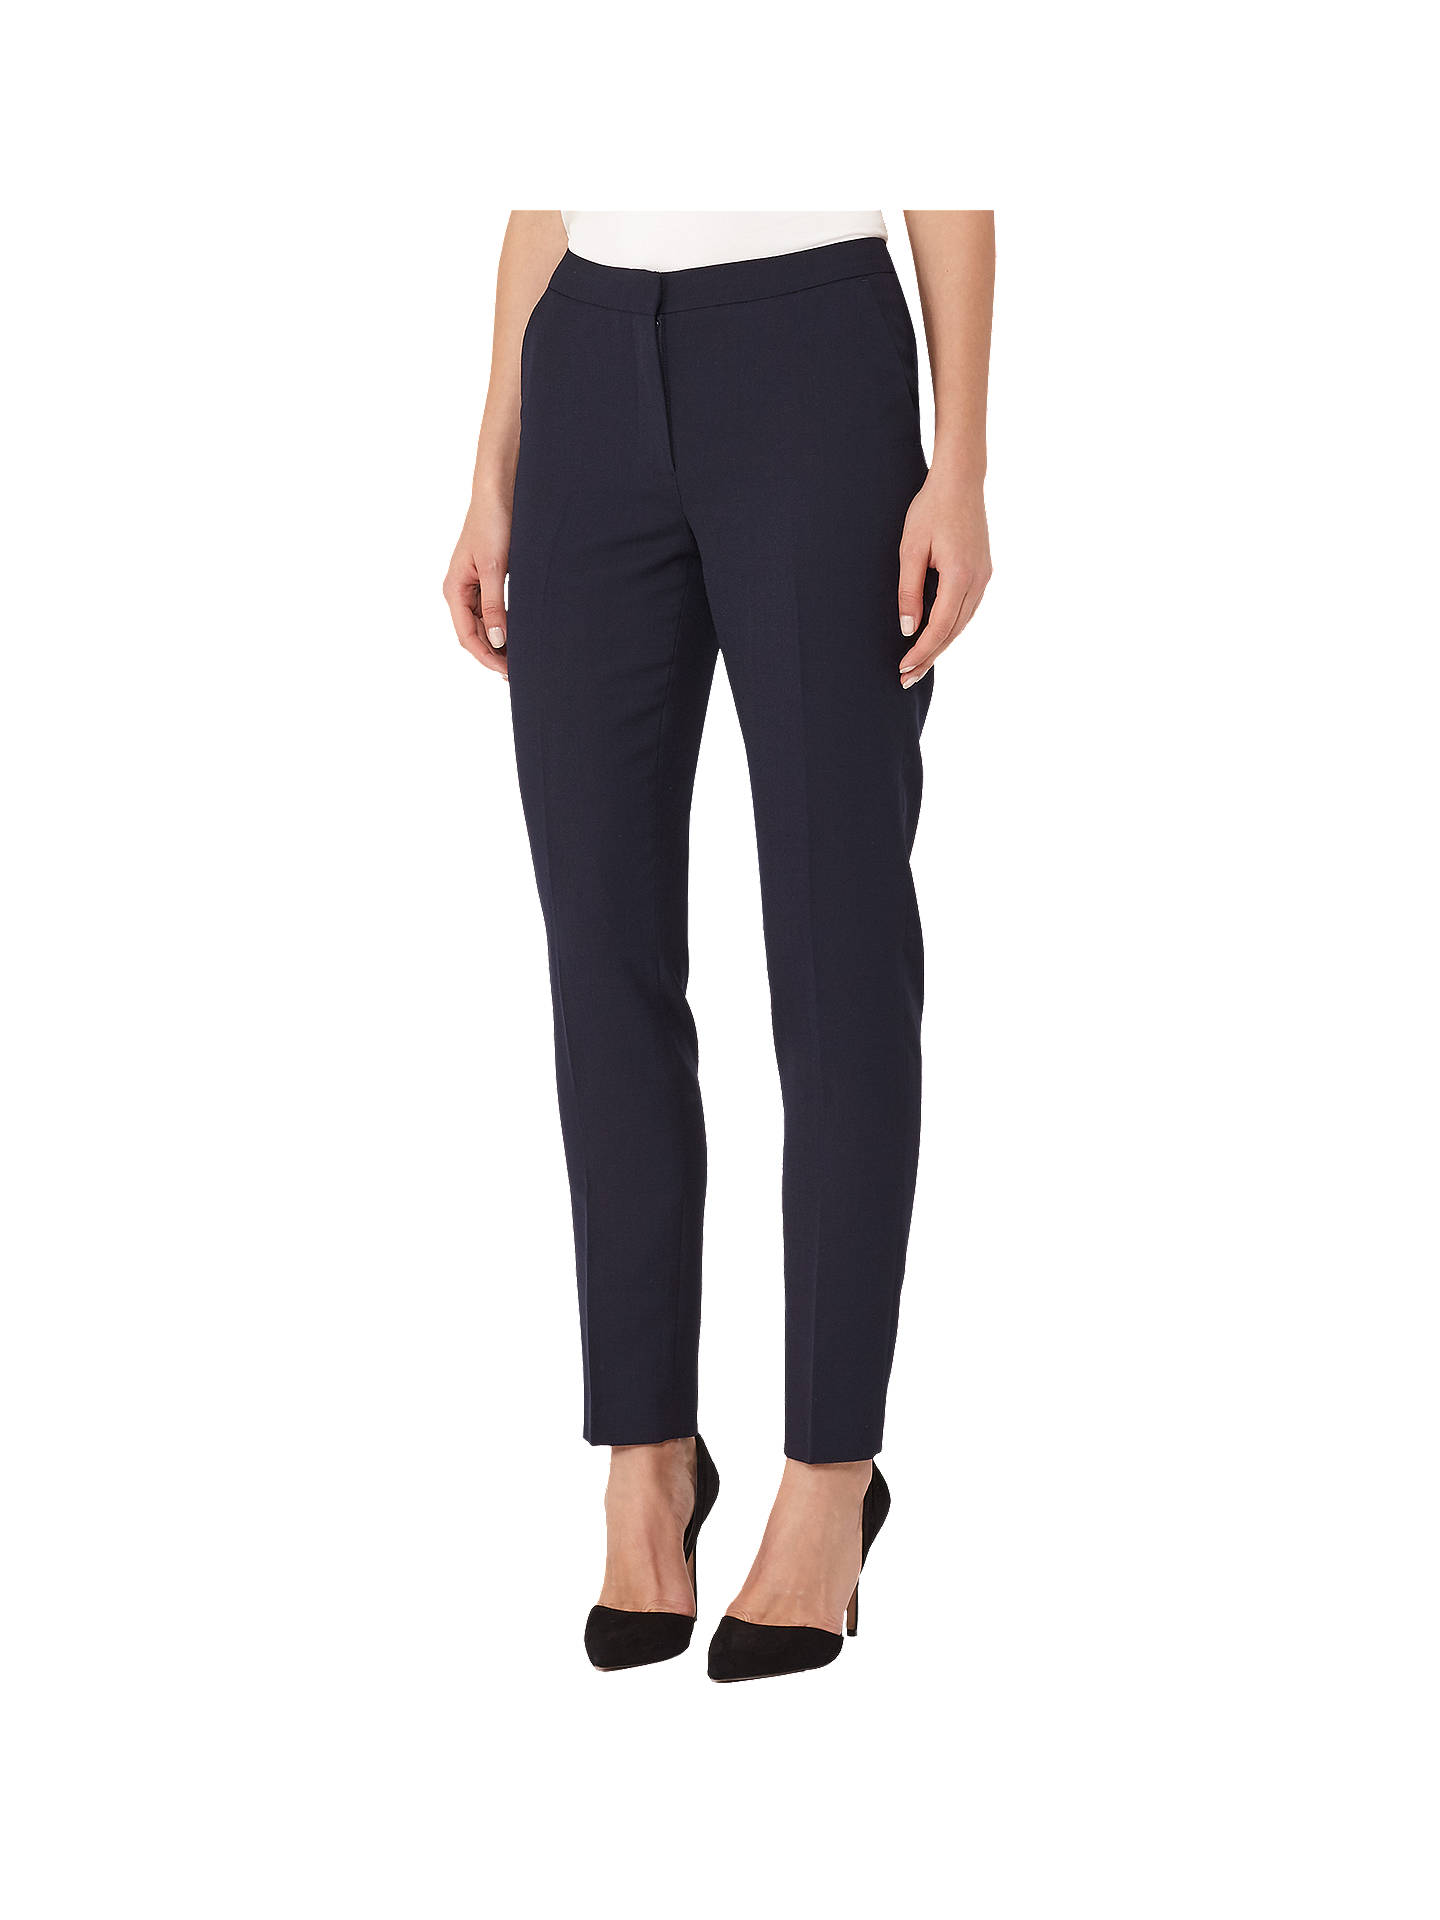 BuyReiss Faulkner Slim-Leg Trousers, Navy, 6 Online at johnlewis.com